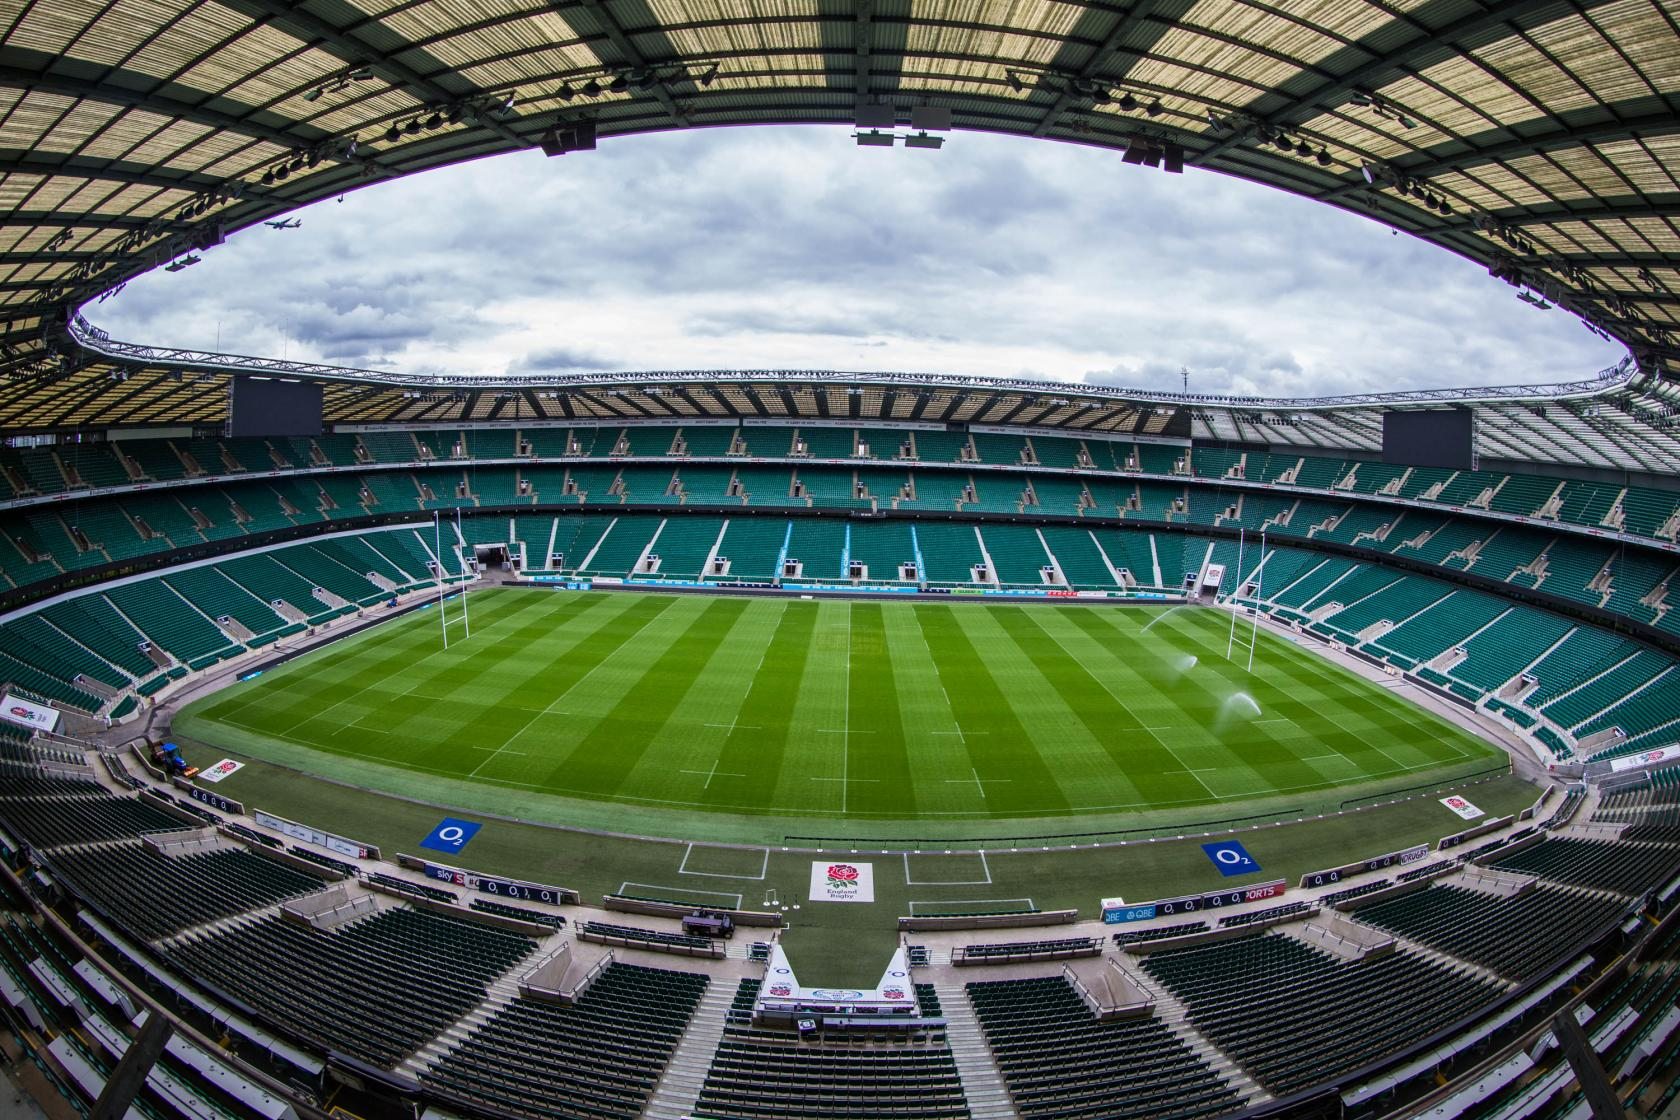 Twickenham Stadium is fantastic for client entertaining, particularly on match days, with the member's lounge overlooking the pitch.